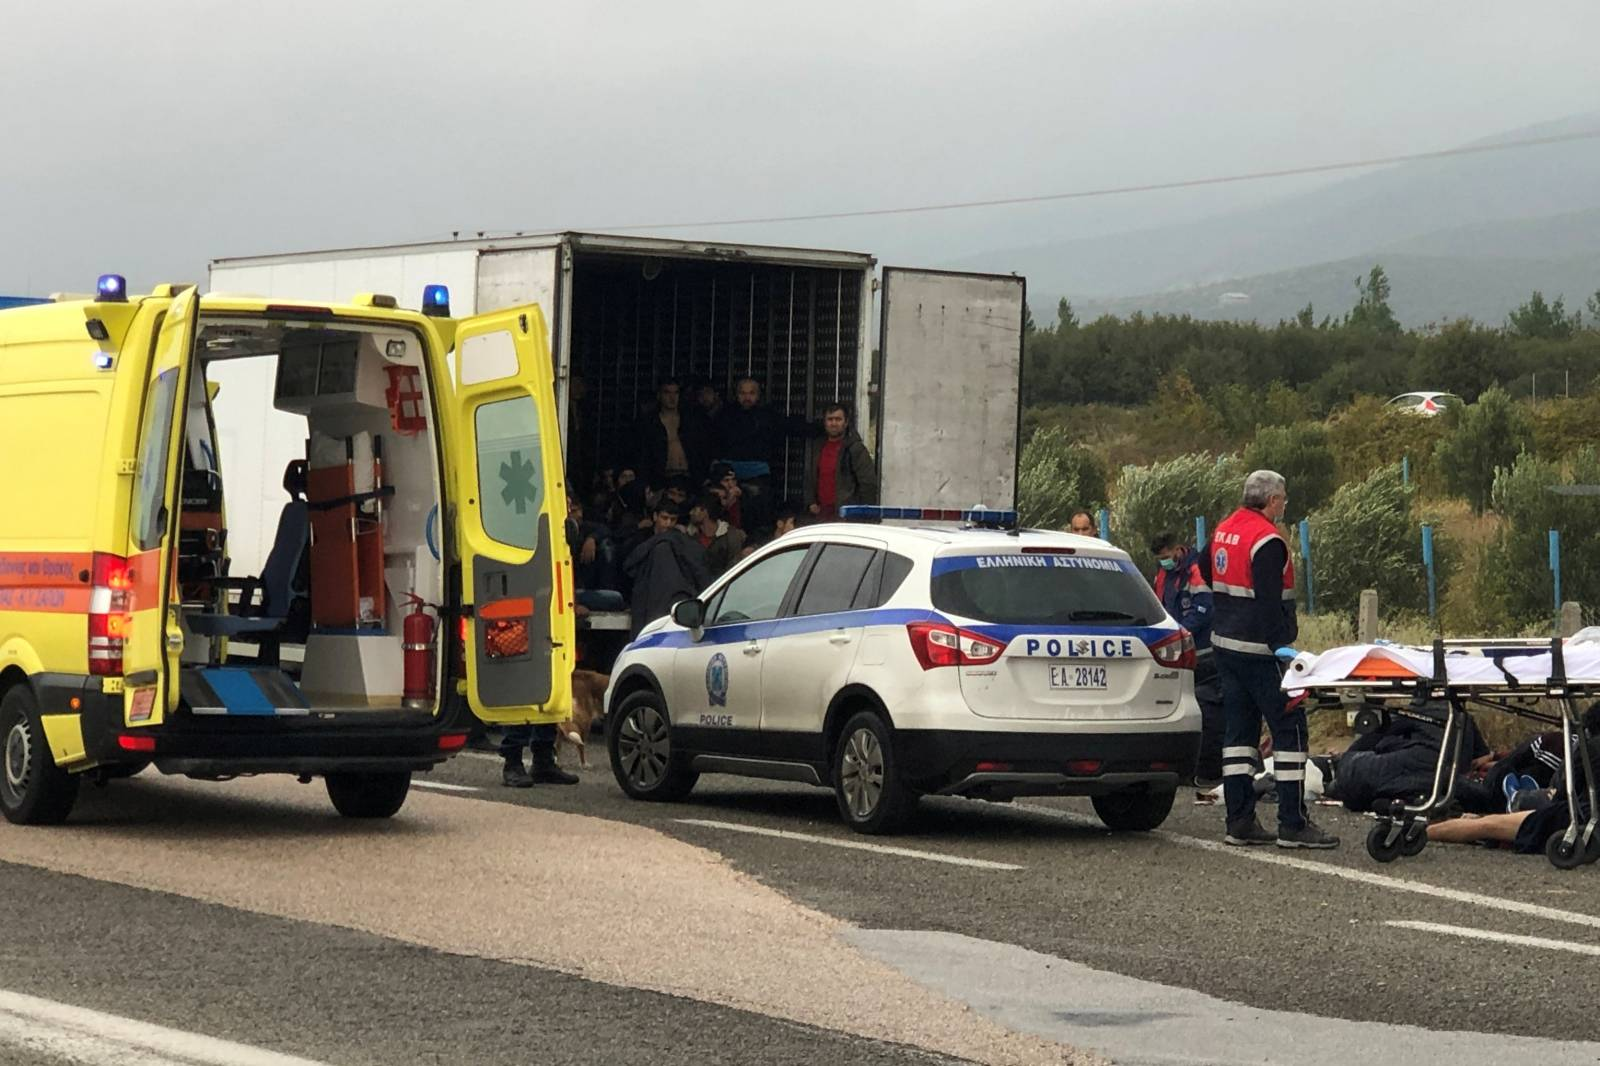 Migrants are seen inside a refrigerated truck found by police, after a check at a motorway near Xanthi